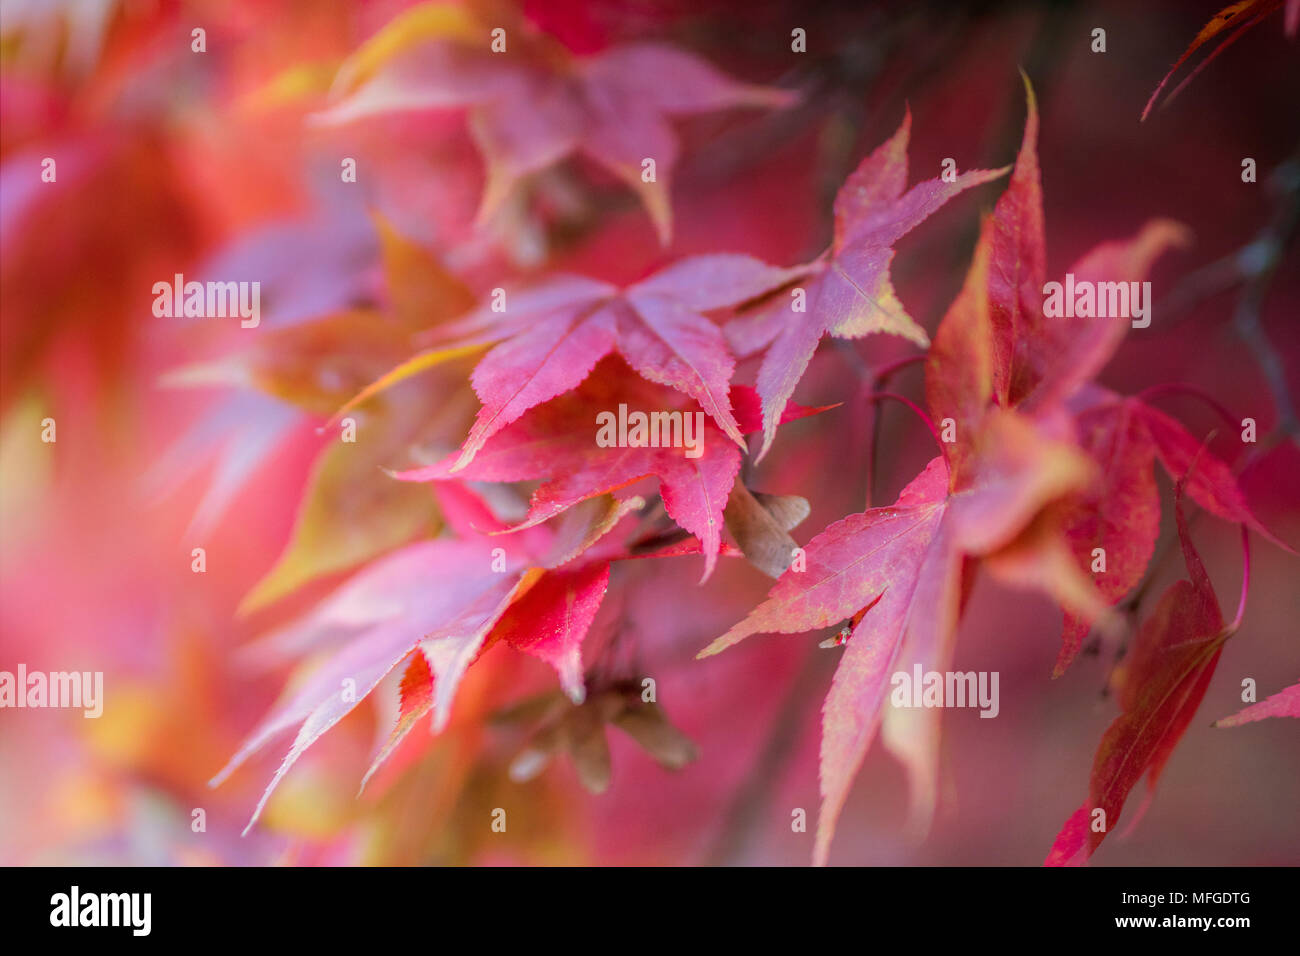 Soft focus pink shades of autumn leaves - Stock Image